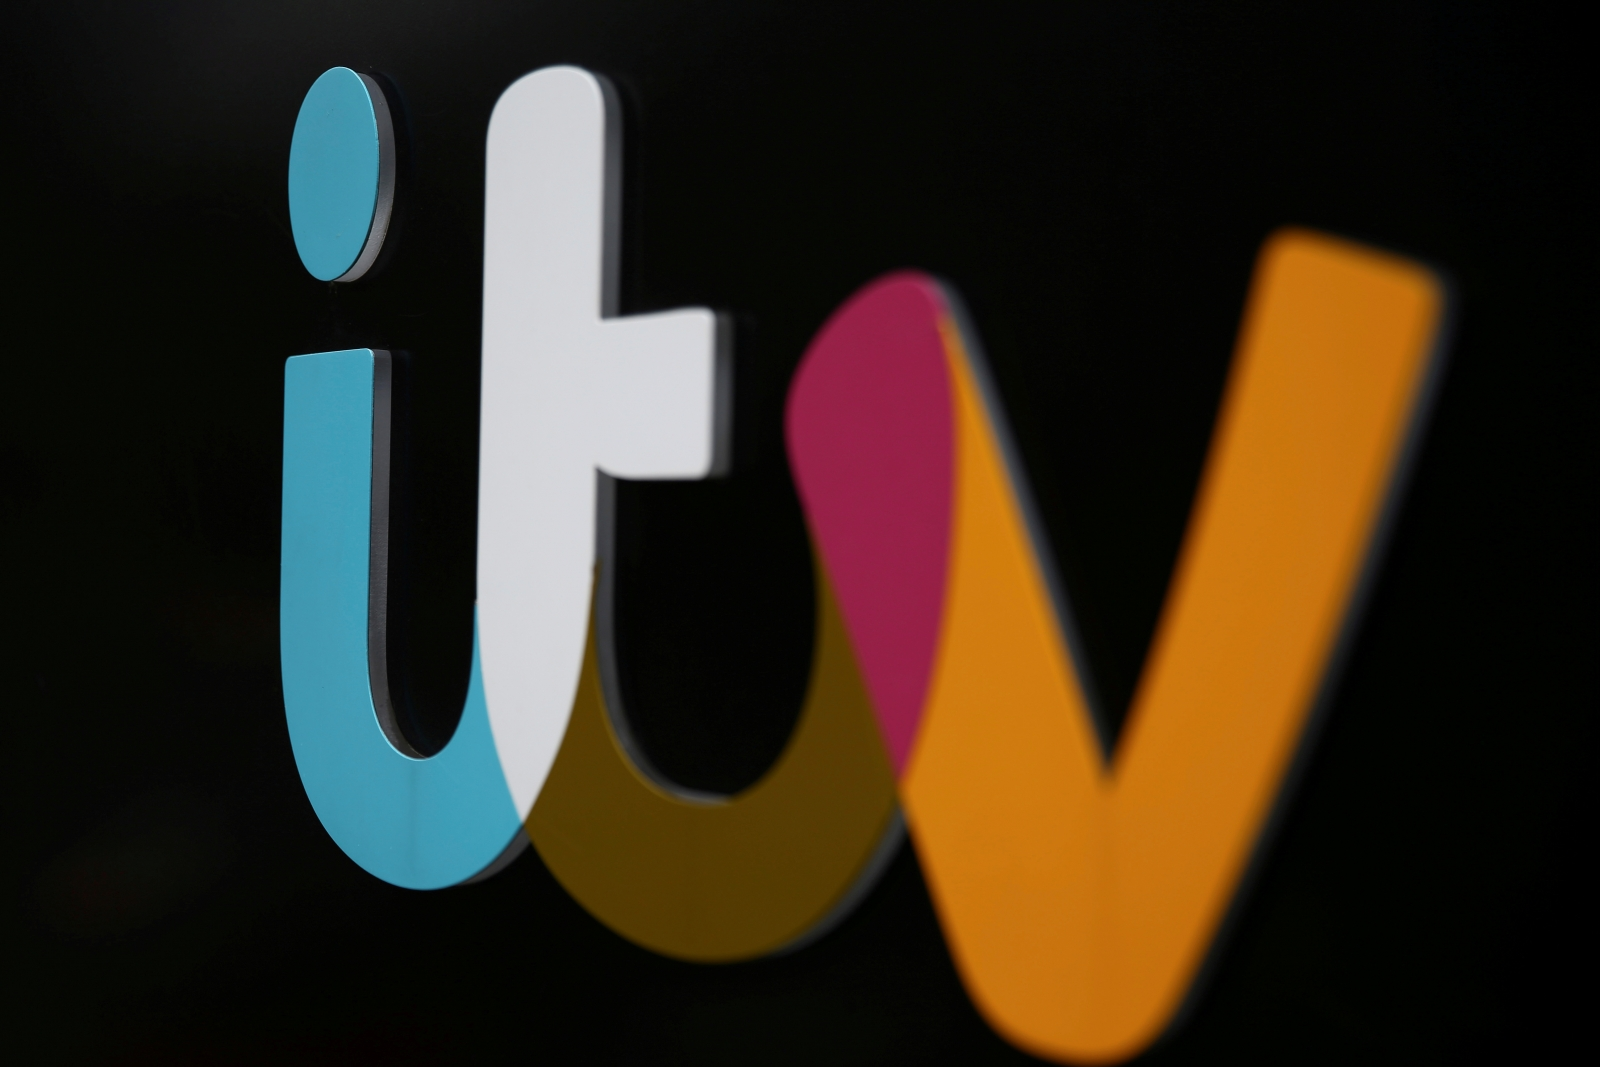 ITV Reports 3% Drop in Revenue in First Quarter